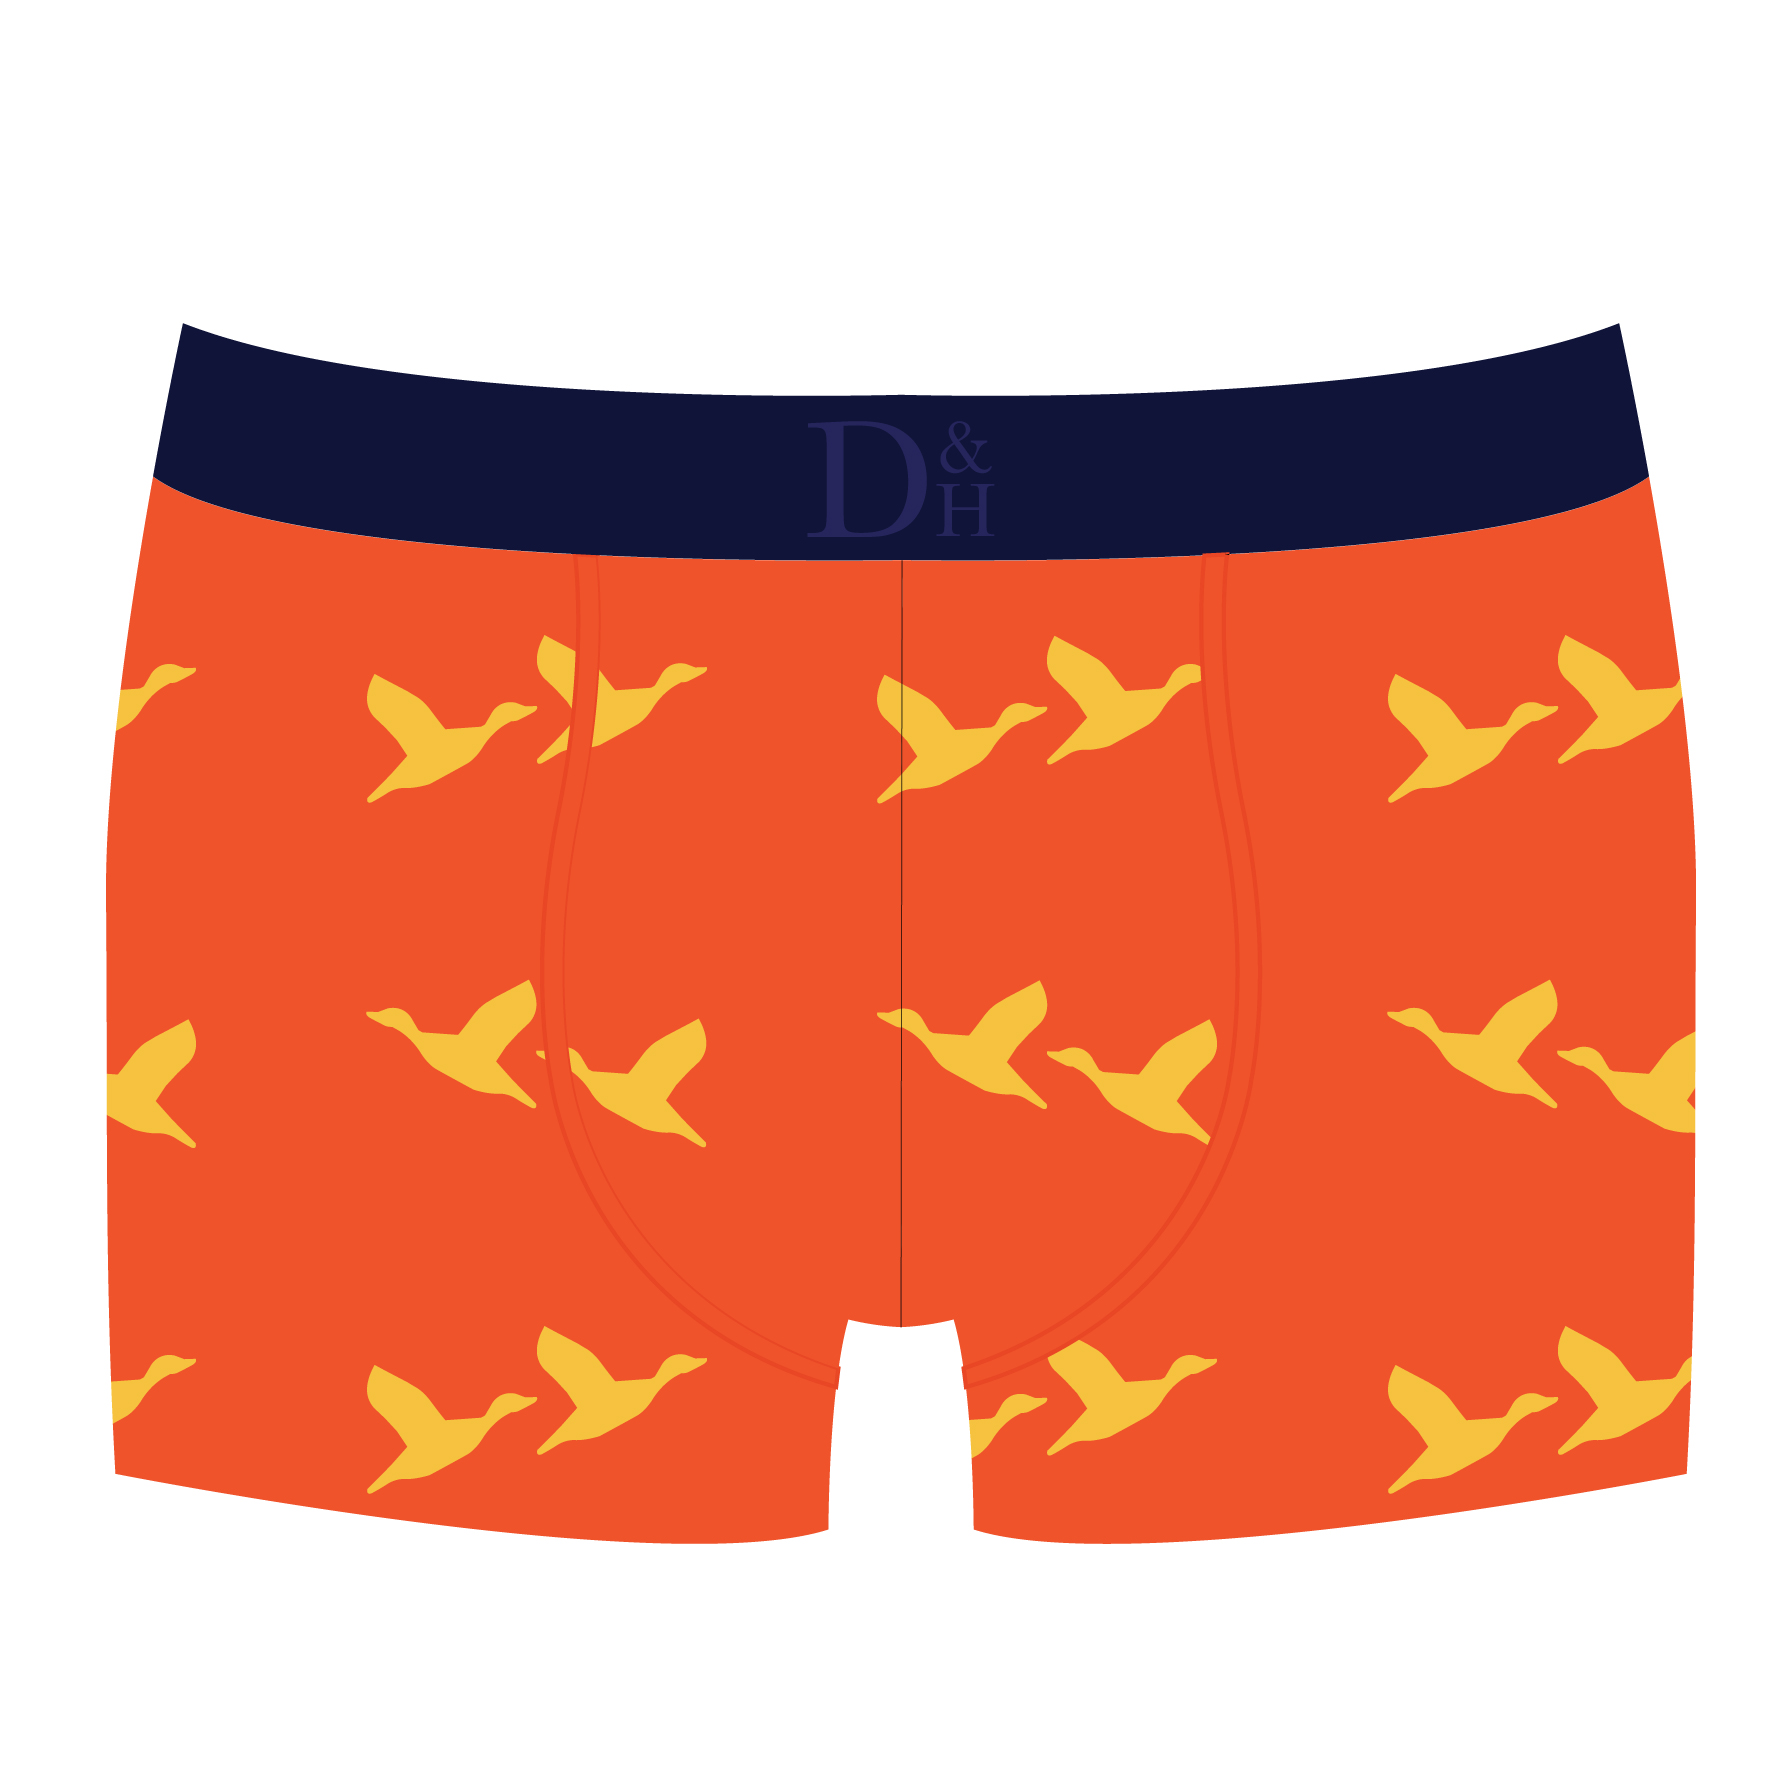 """LAUNCHING AUGUST 2016  KEN-ORG-DUK - Kensington Orange Duck Boxer Brief  RRP £22  SIZES: Small (30-32""""), Medium (32-34""""), Large (34-36""""), Extra Large (36-38"""")  OUT OF STOCK"""